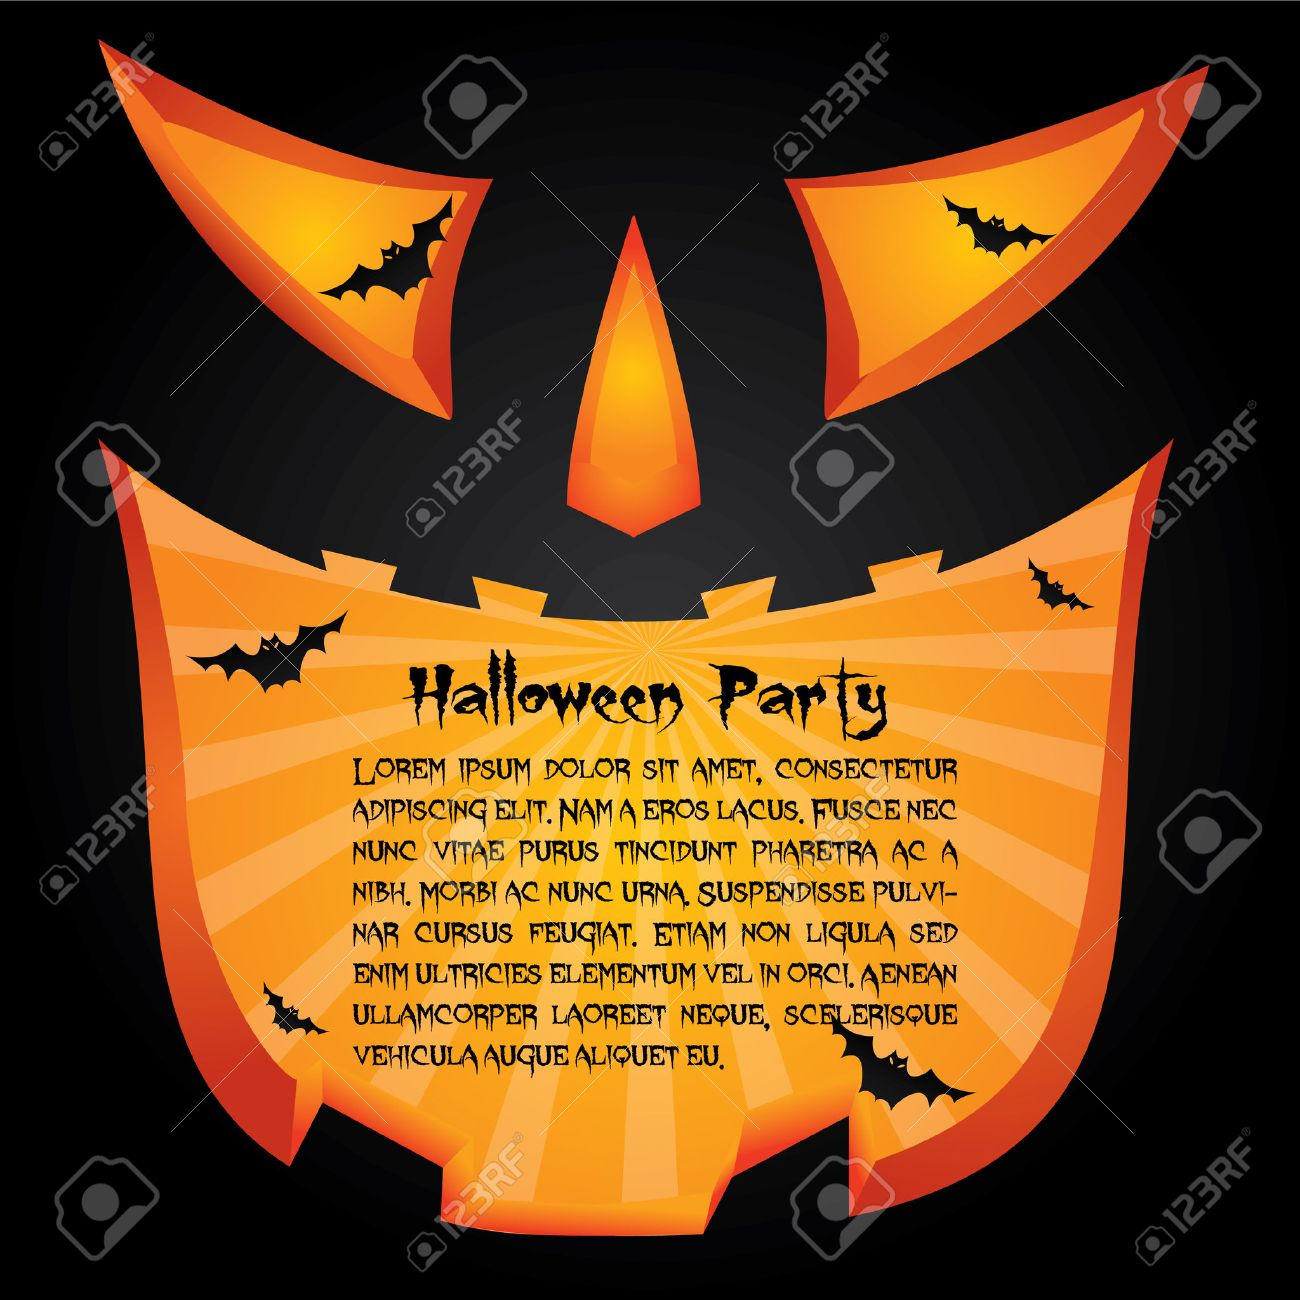 Halloween Party Card Royalty Free Cliparts, Vectors, And Stock ...